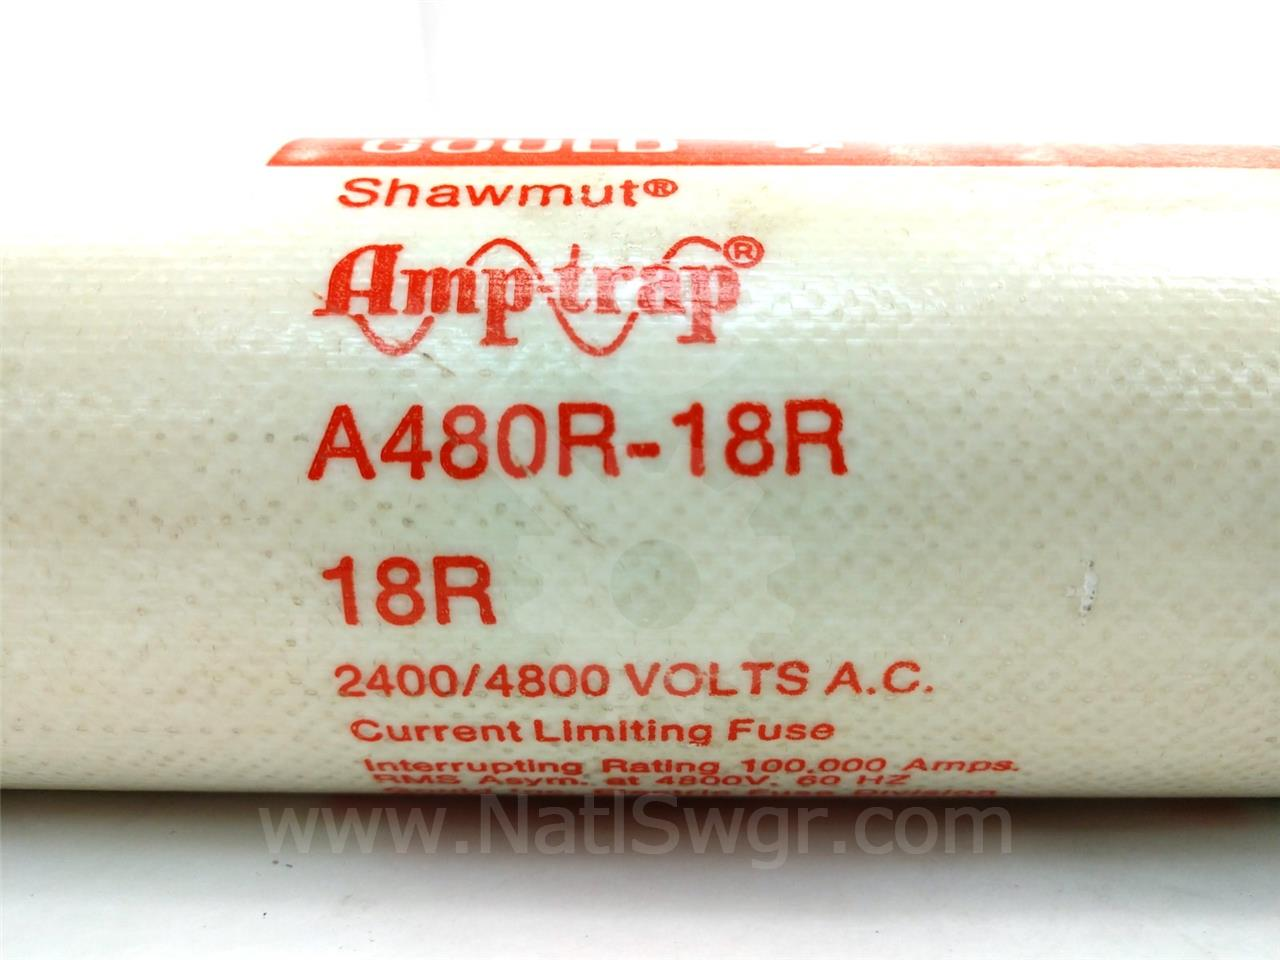 A480R-18R 18R SHAWMUT AMP-TRAP POWER FUSE 5KV R RATED 390A MOTOR STARTER FUSE, DOUBLE BARREL